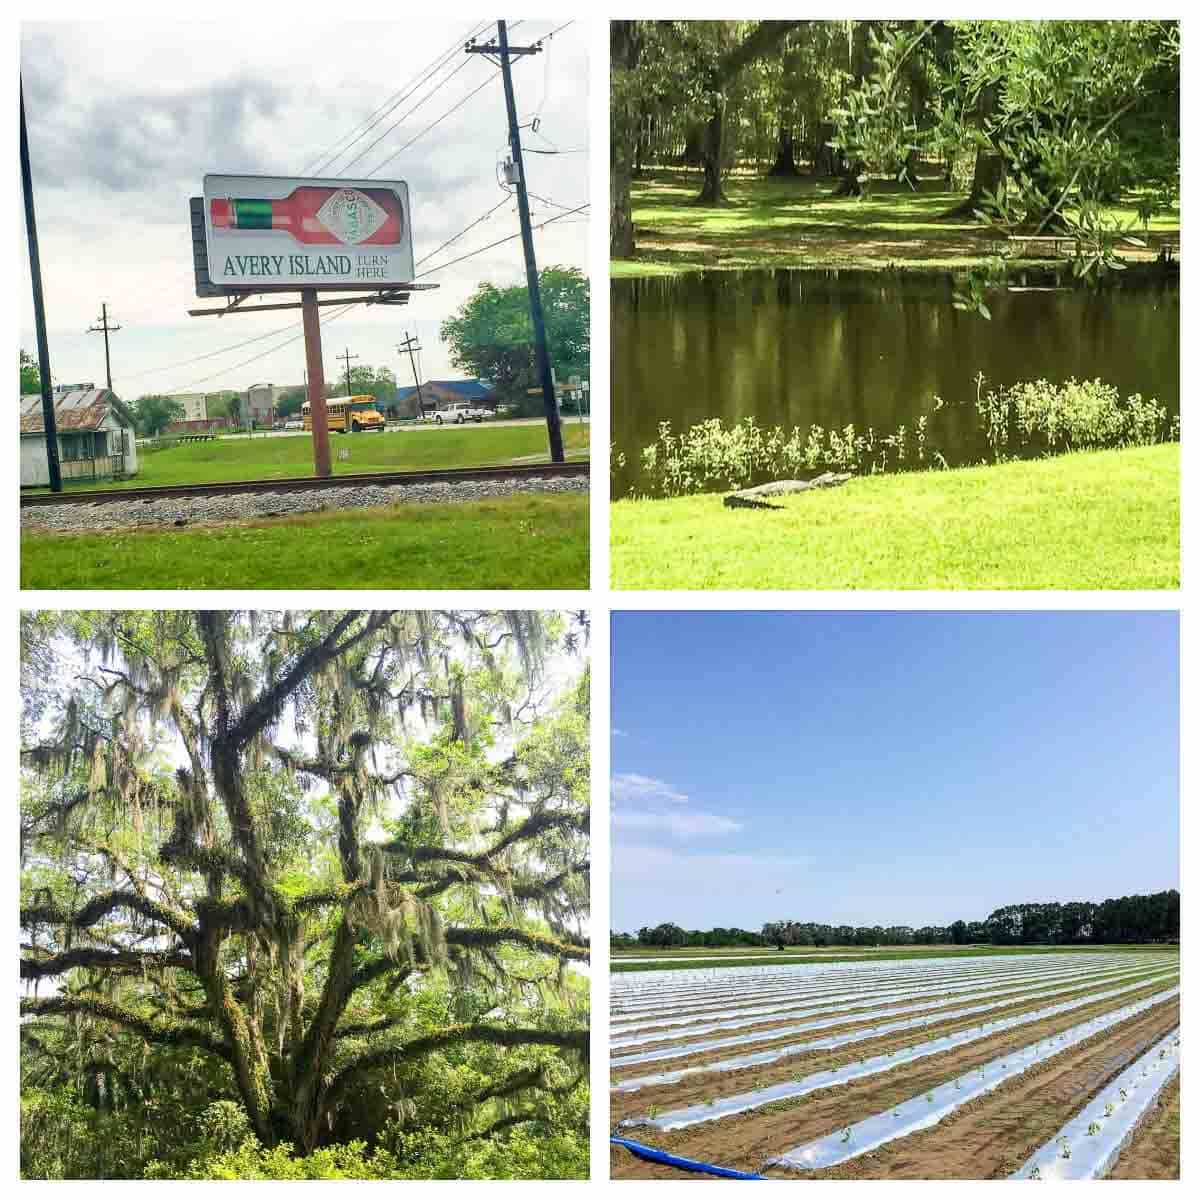 Avery Island, Louisiana, home to the Tabasco factory and Tabasco pepper fields, plus a recipe for grilled pineapple shrimp skewers. @wellplated